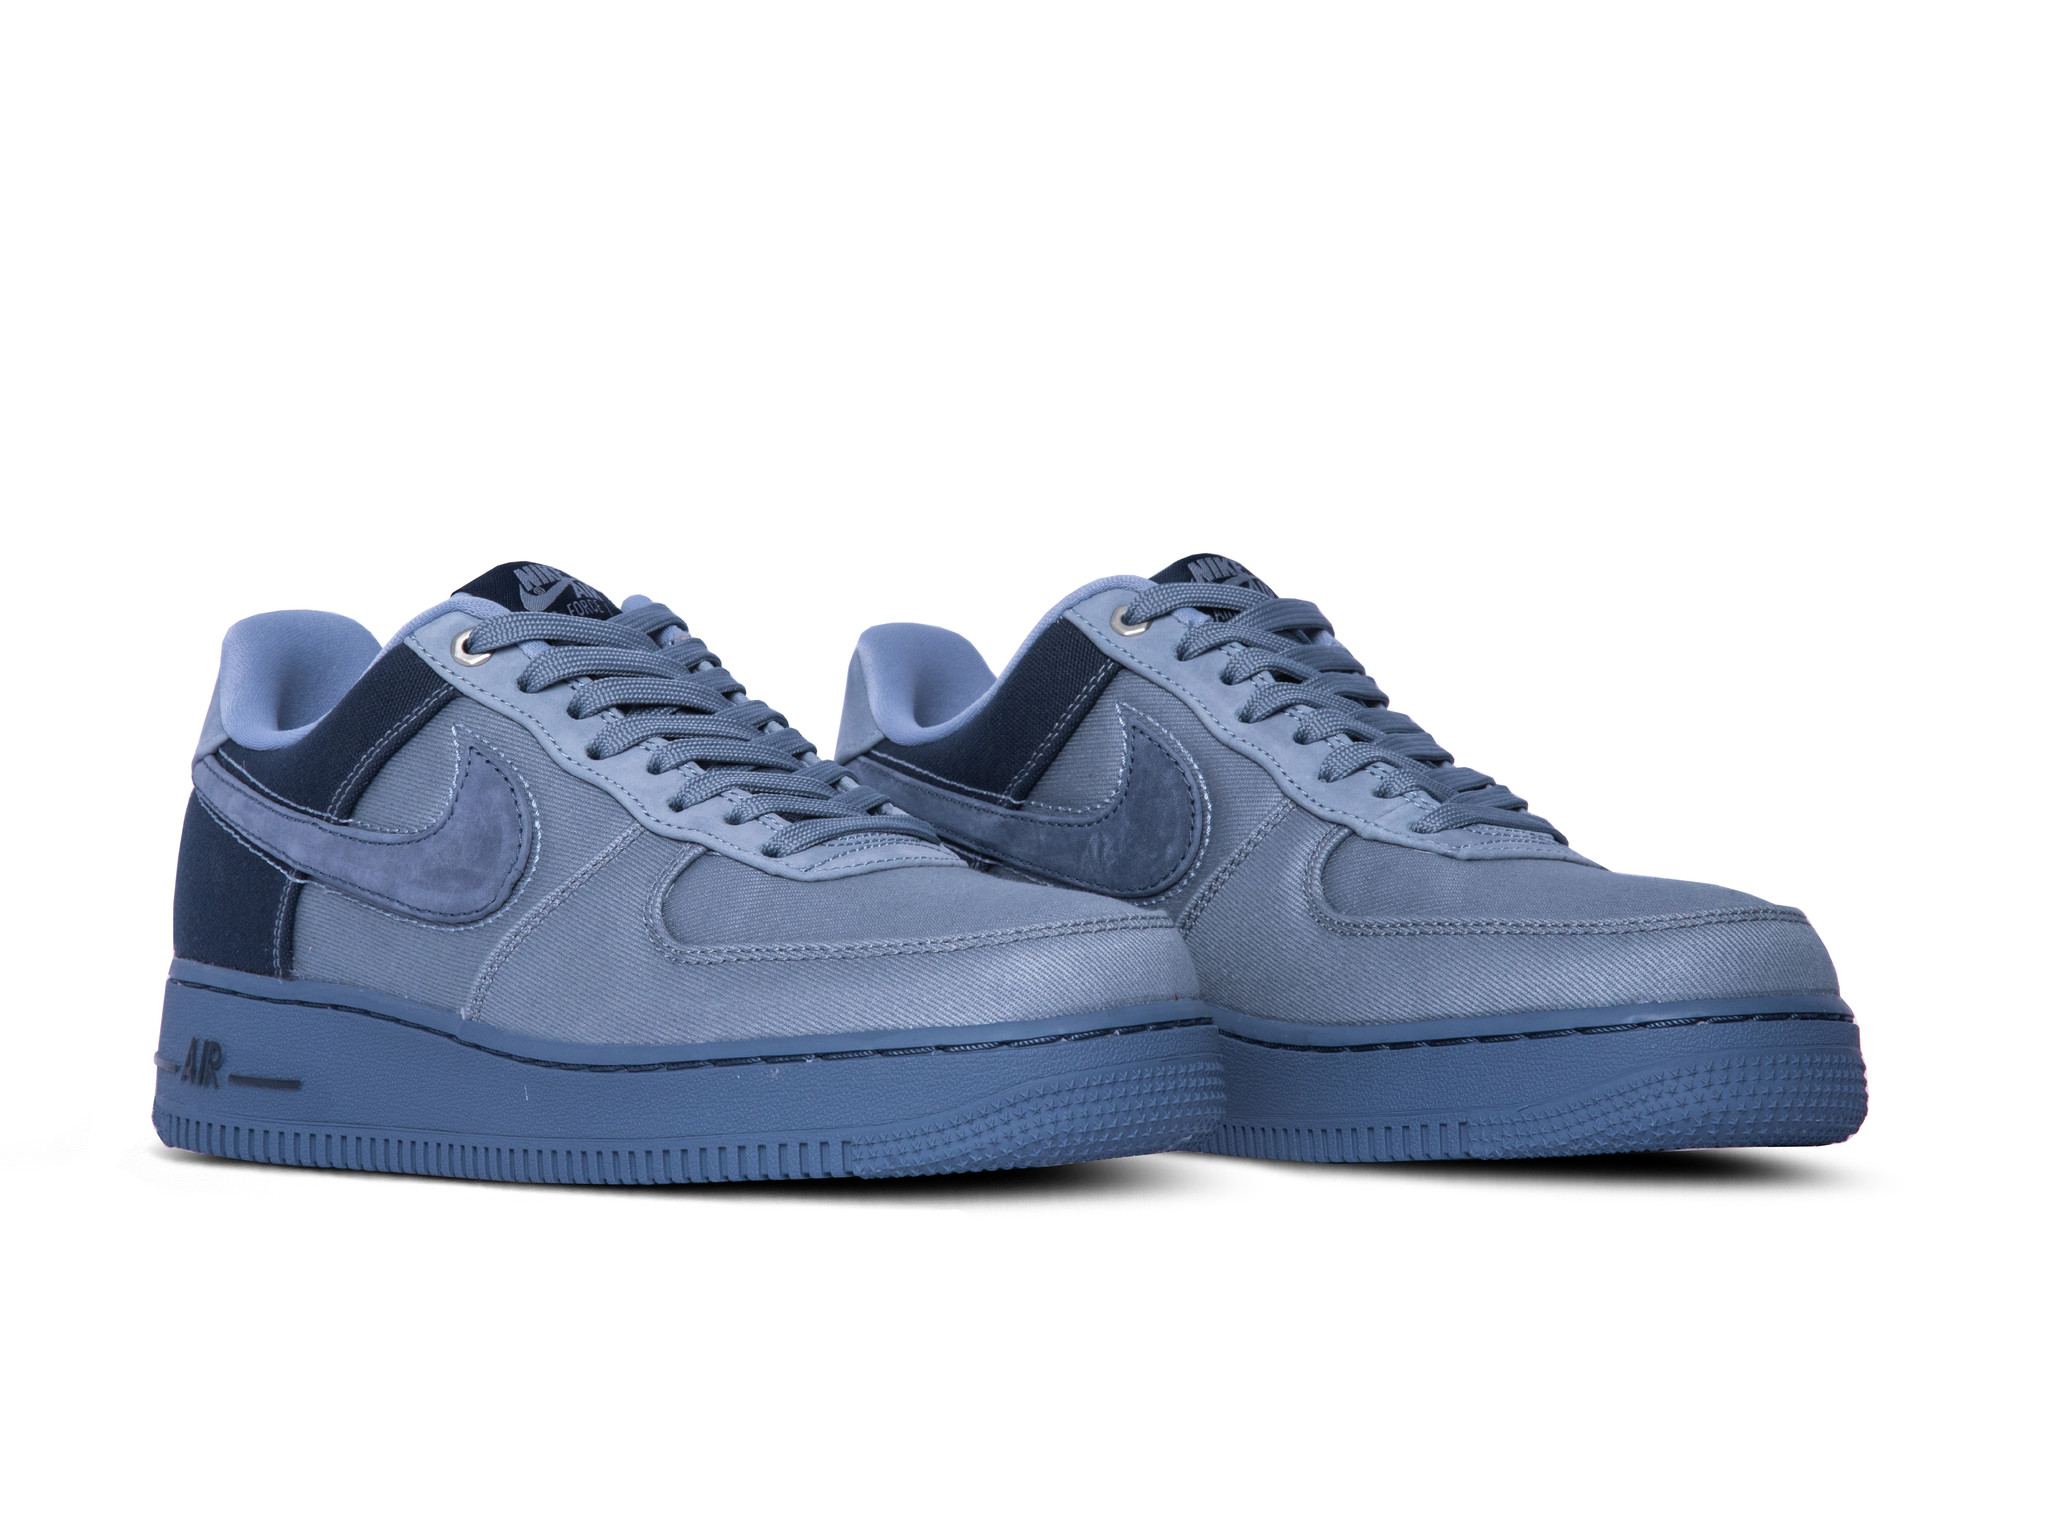 new design authentic performance sportswear Nike Air Force 1 '07 Premium Ashen Slate Diffused Blue ...